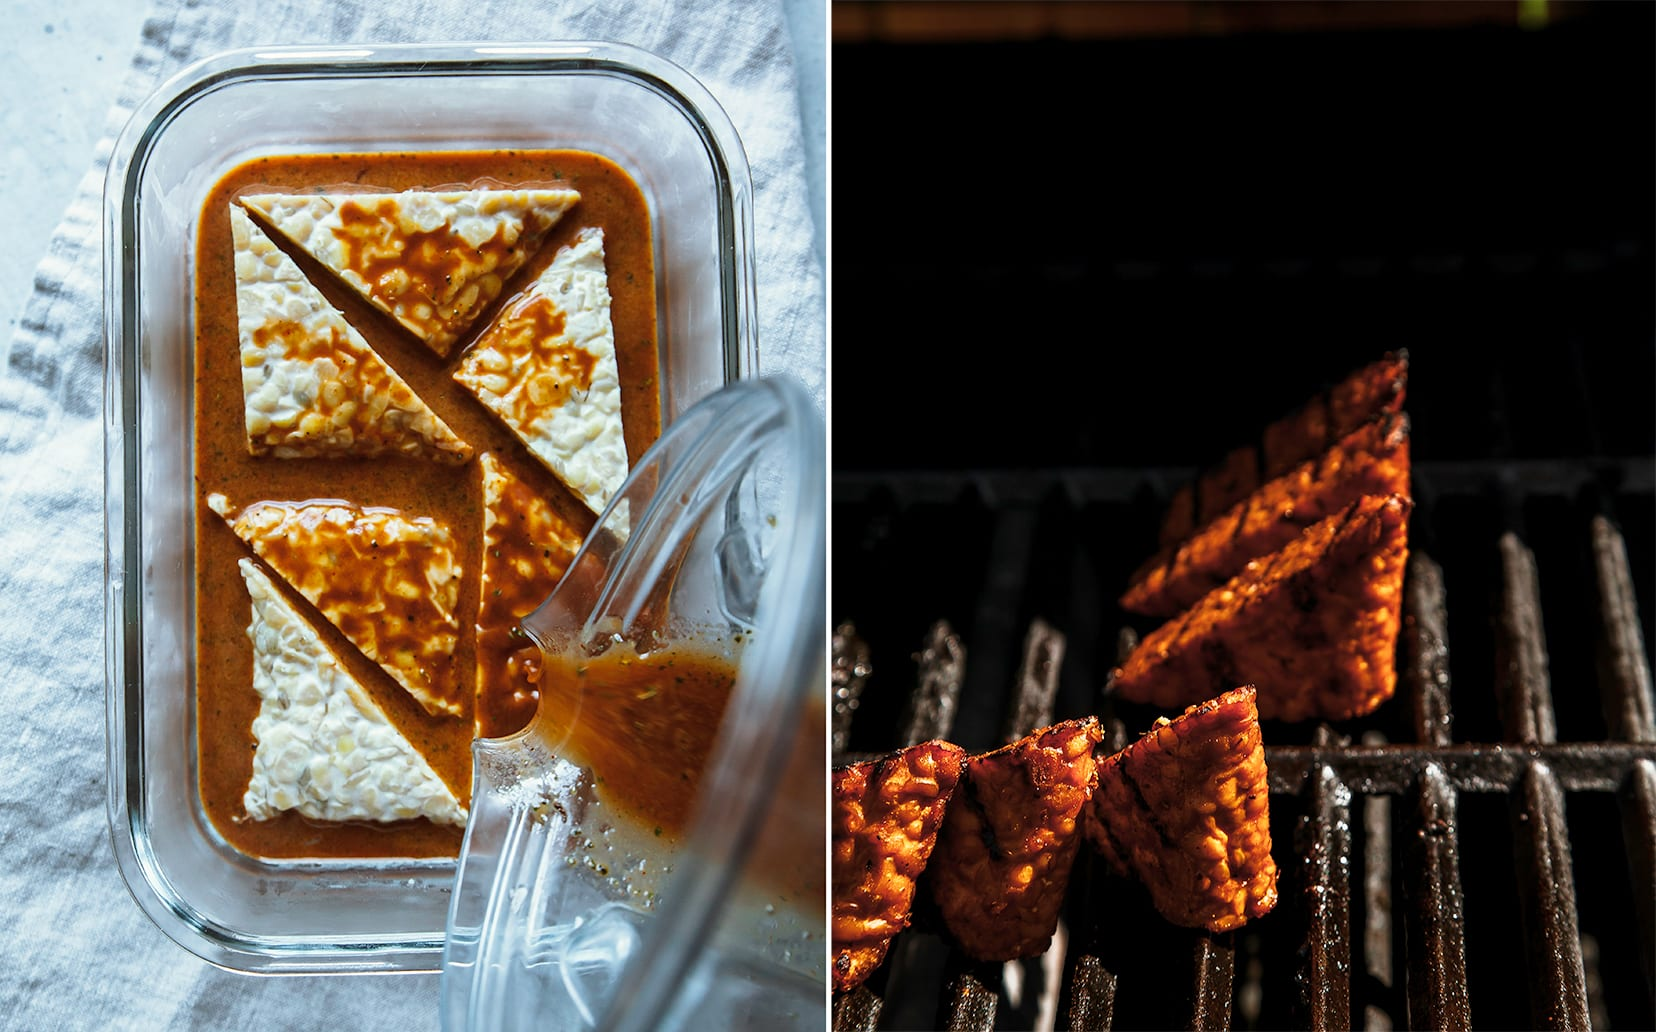 Two photos show triangular pieces of tempeh being marinated in a container, and also being grilled outdoors.